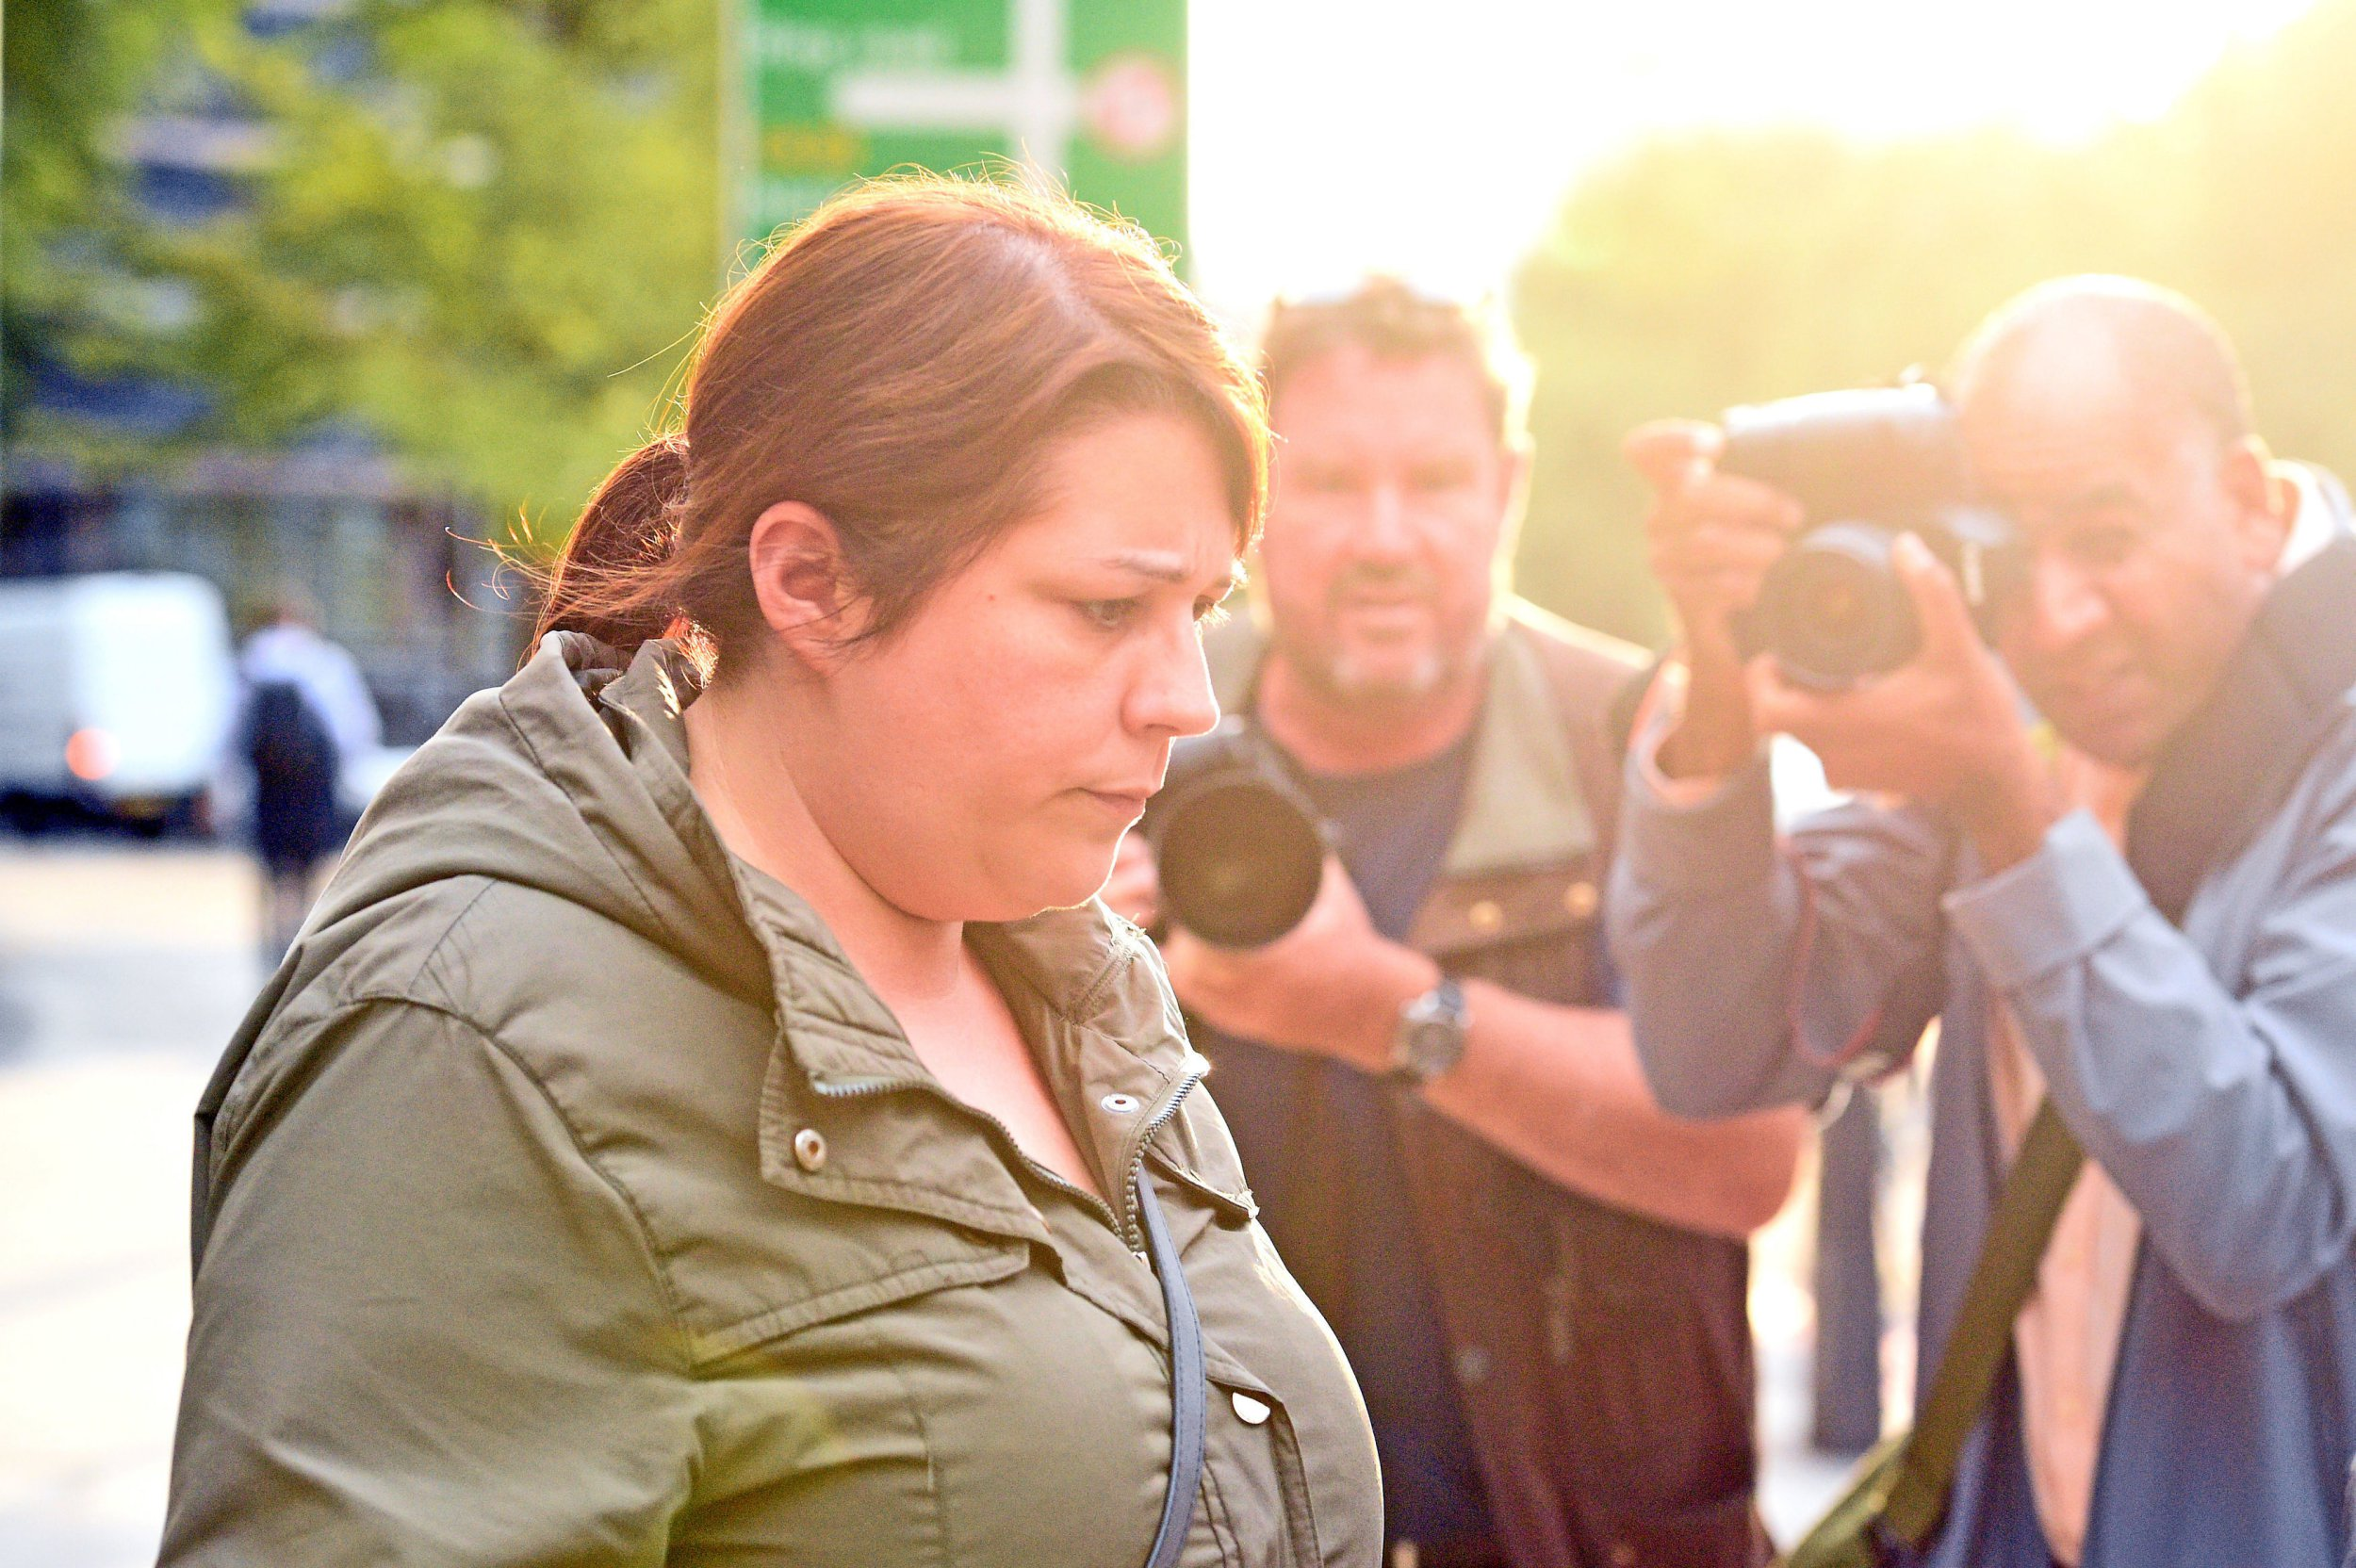 Jenny McDonagh, who worked for Kensington and Chelsea Council, leaving Westminster Magistrates Court where she had appeared charged with fraud offences after allegedly obtaining money intended for victims of the Grenfell Tower disaster. PRESS ASSOCIATION Photo. Picture date: Thursday August 30, 2018. See PA story COURTS Grenfell. Photo credit should read: Kirsty O'Connor/PA Wire